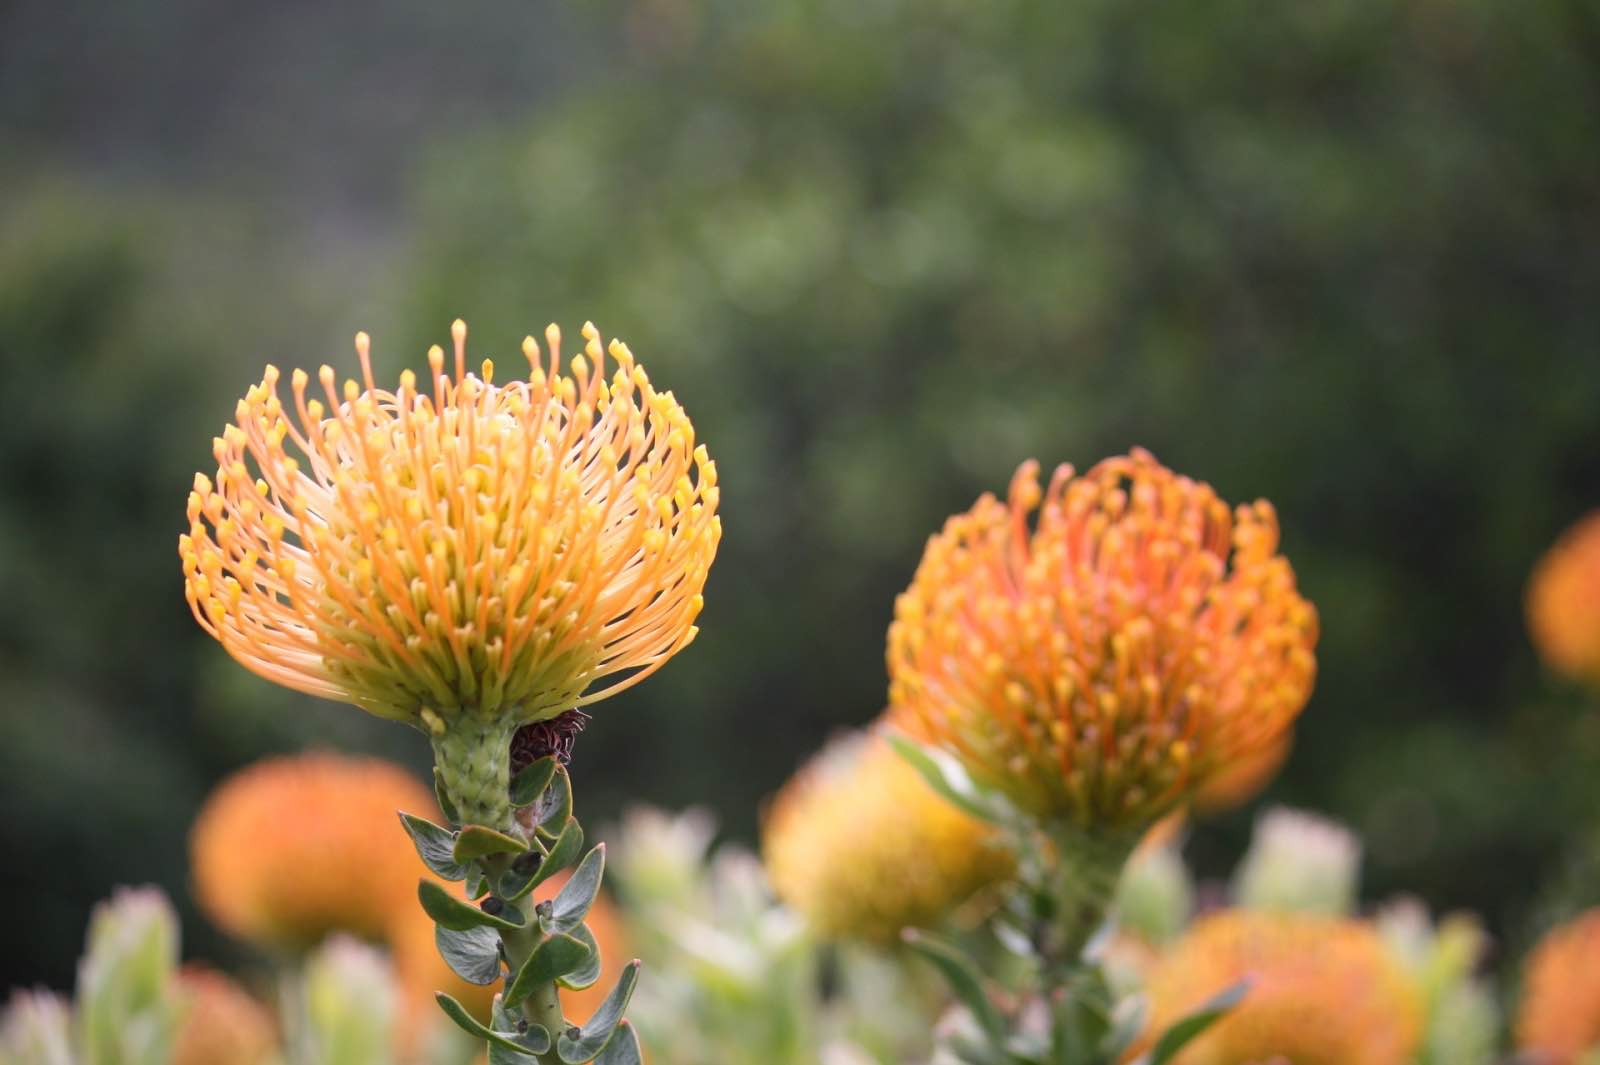 Pin cushions, part of the Cape fynbos kingdom